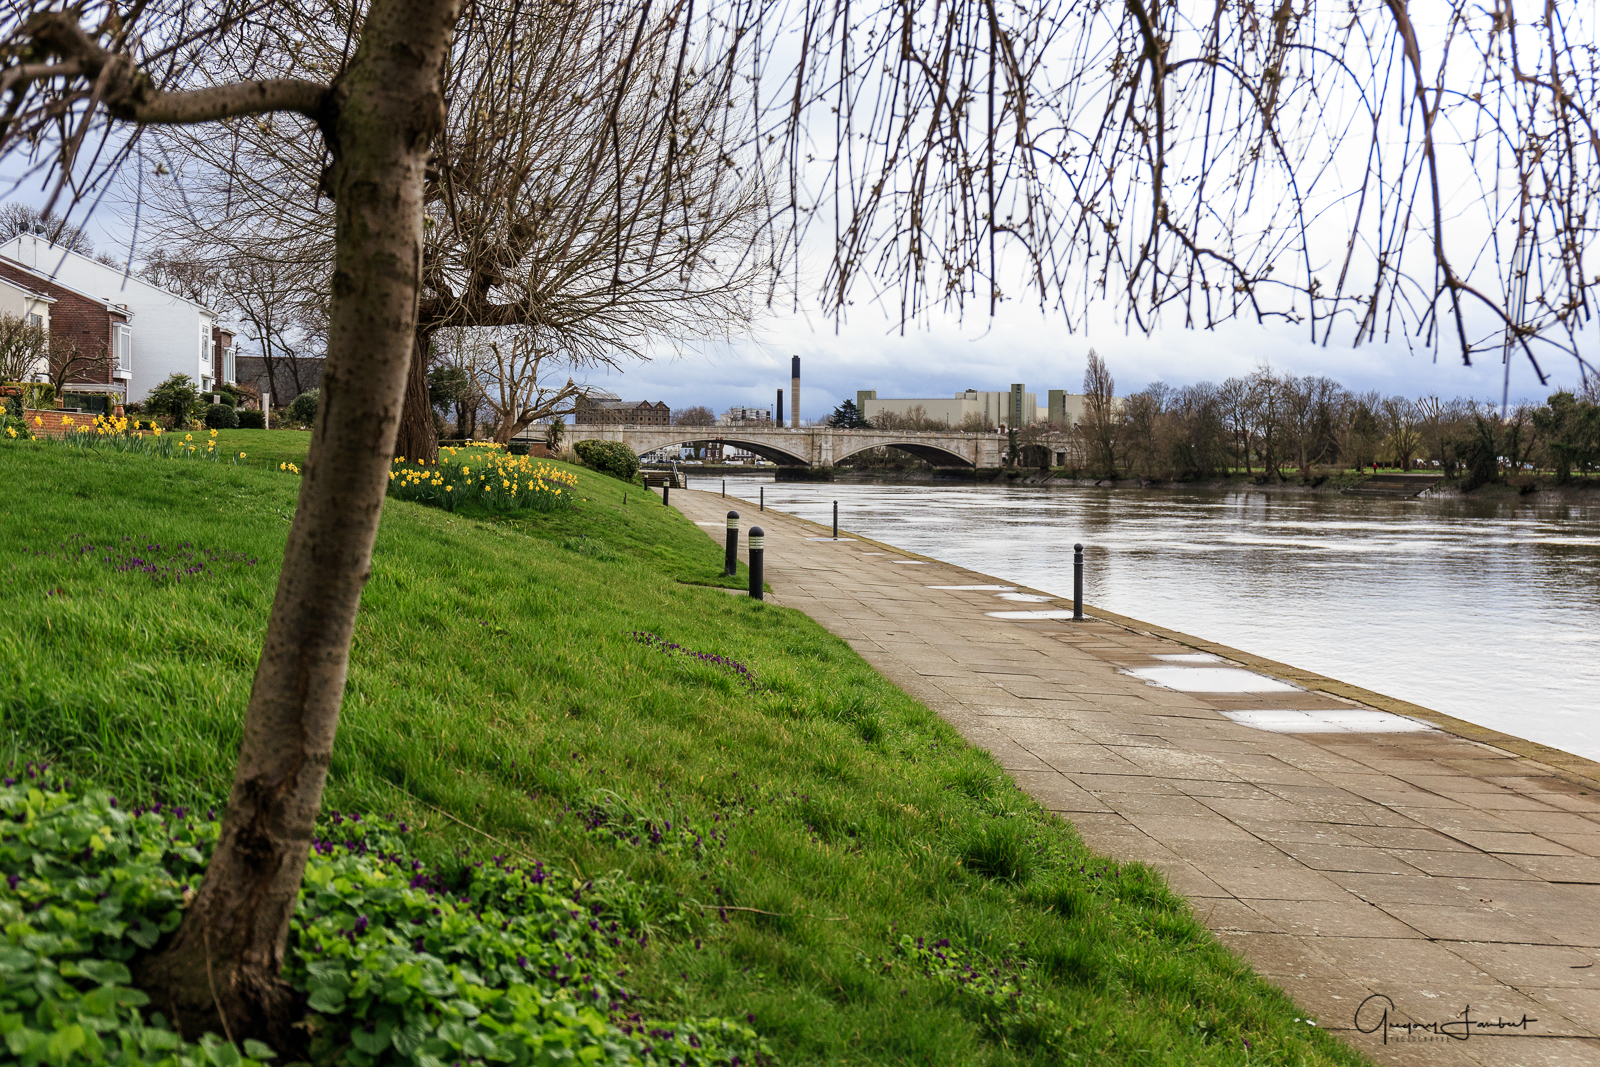 20170308_Hounslow_Chiswick-Bridge_Path-by-the-Thames-looking-back